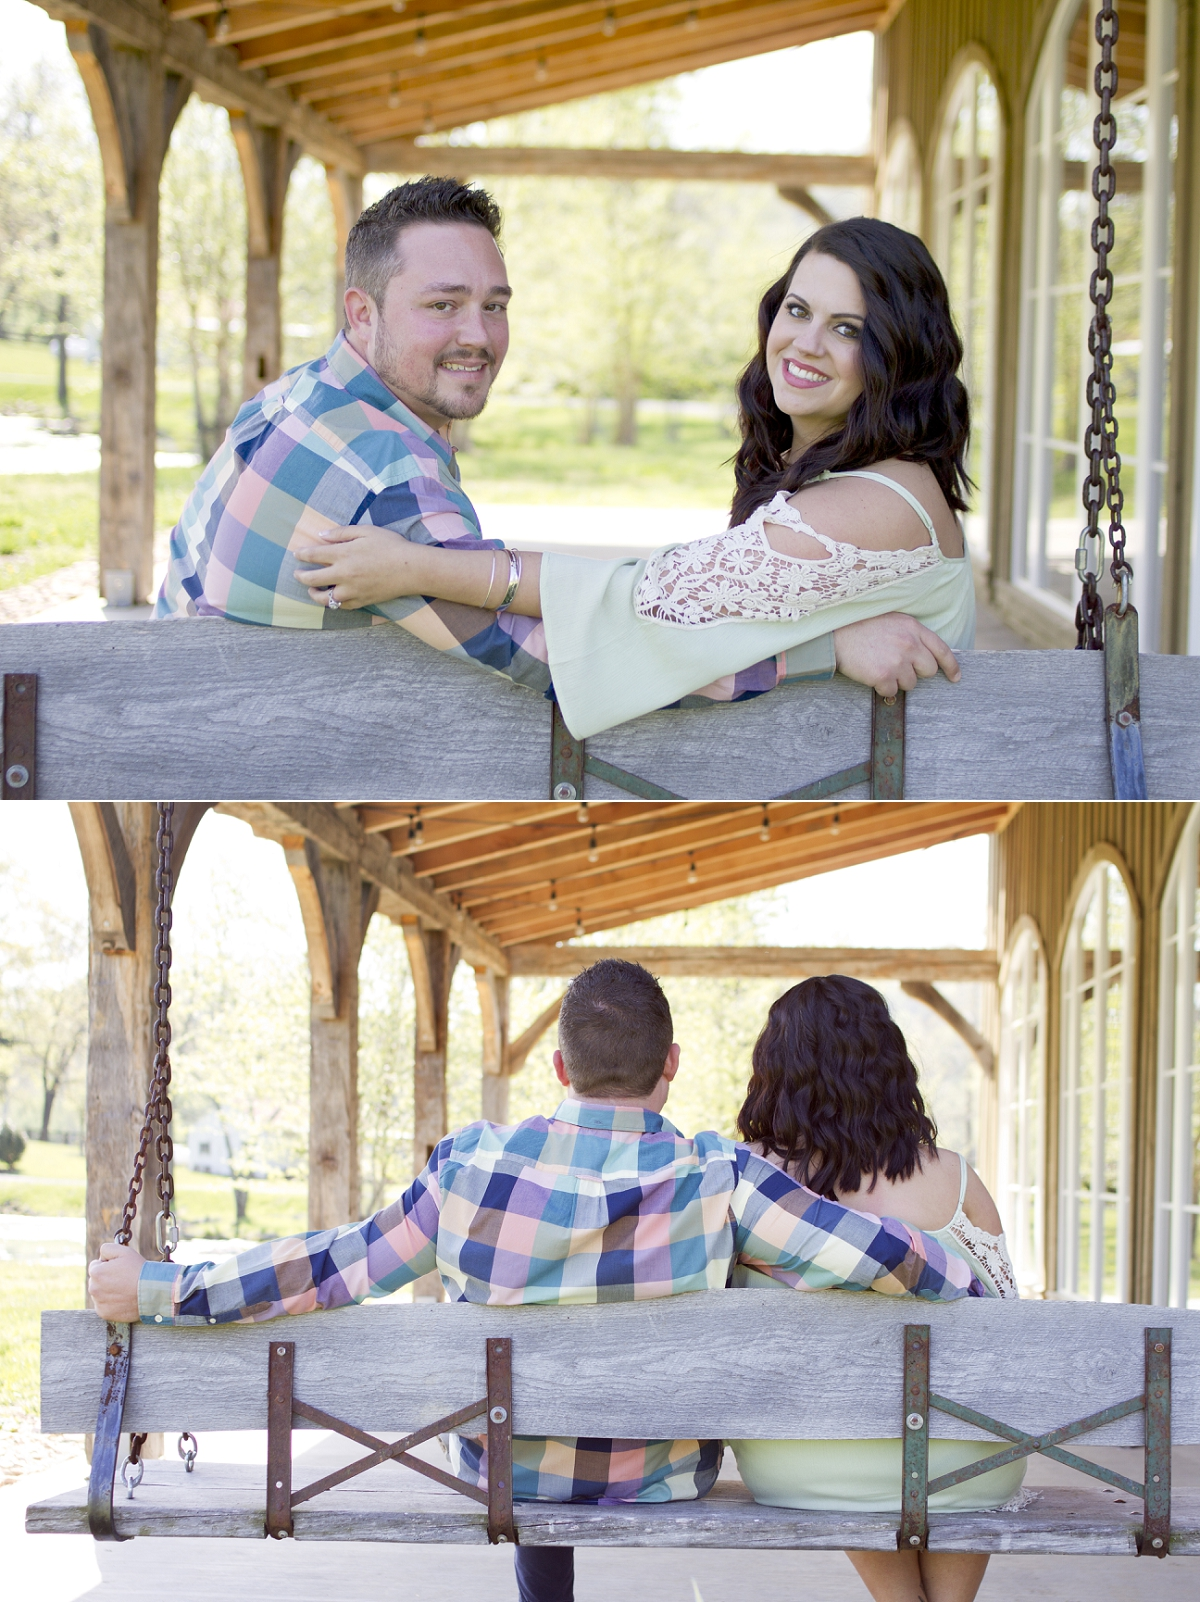 Big-Spring-Farm-Lexington-Engagement-Photos-_0011.jpg